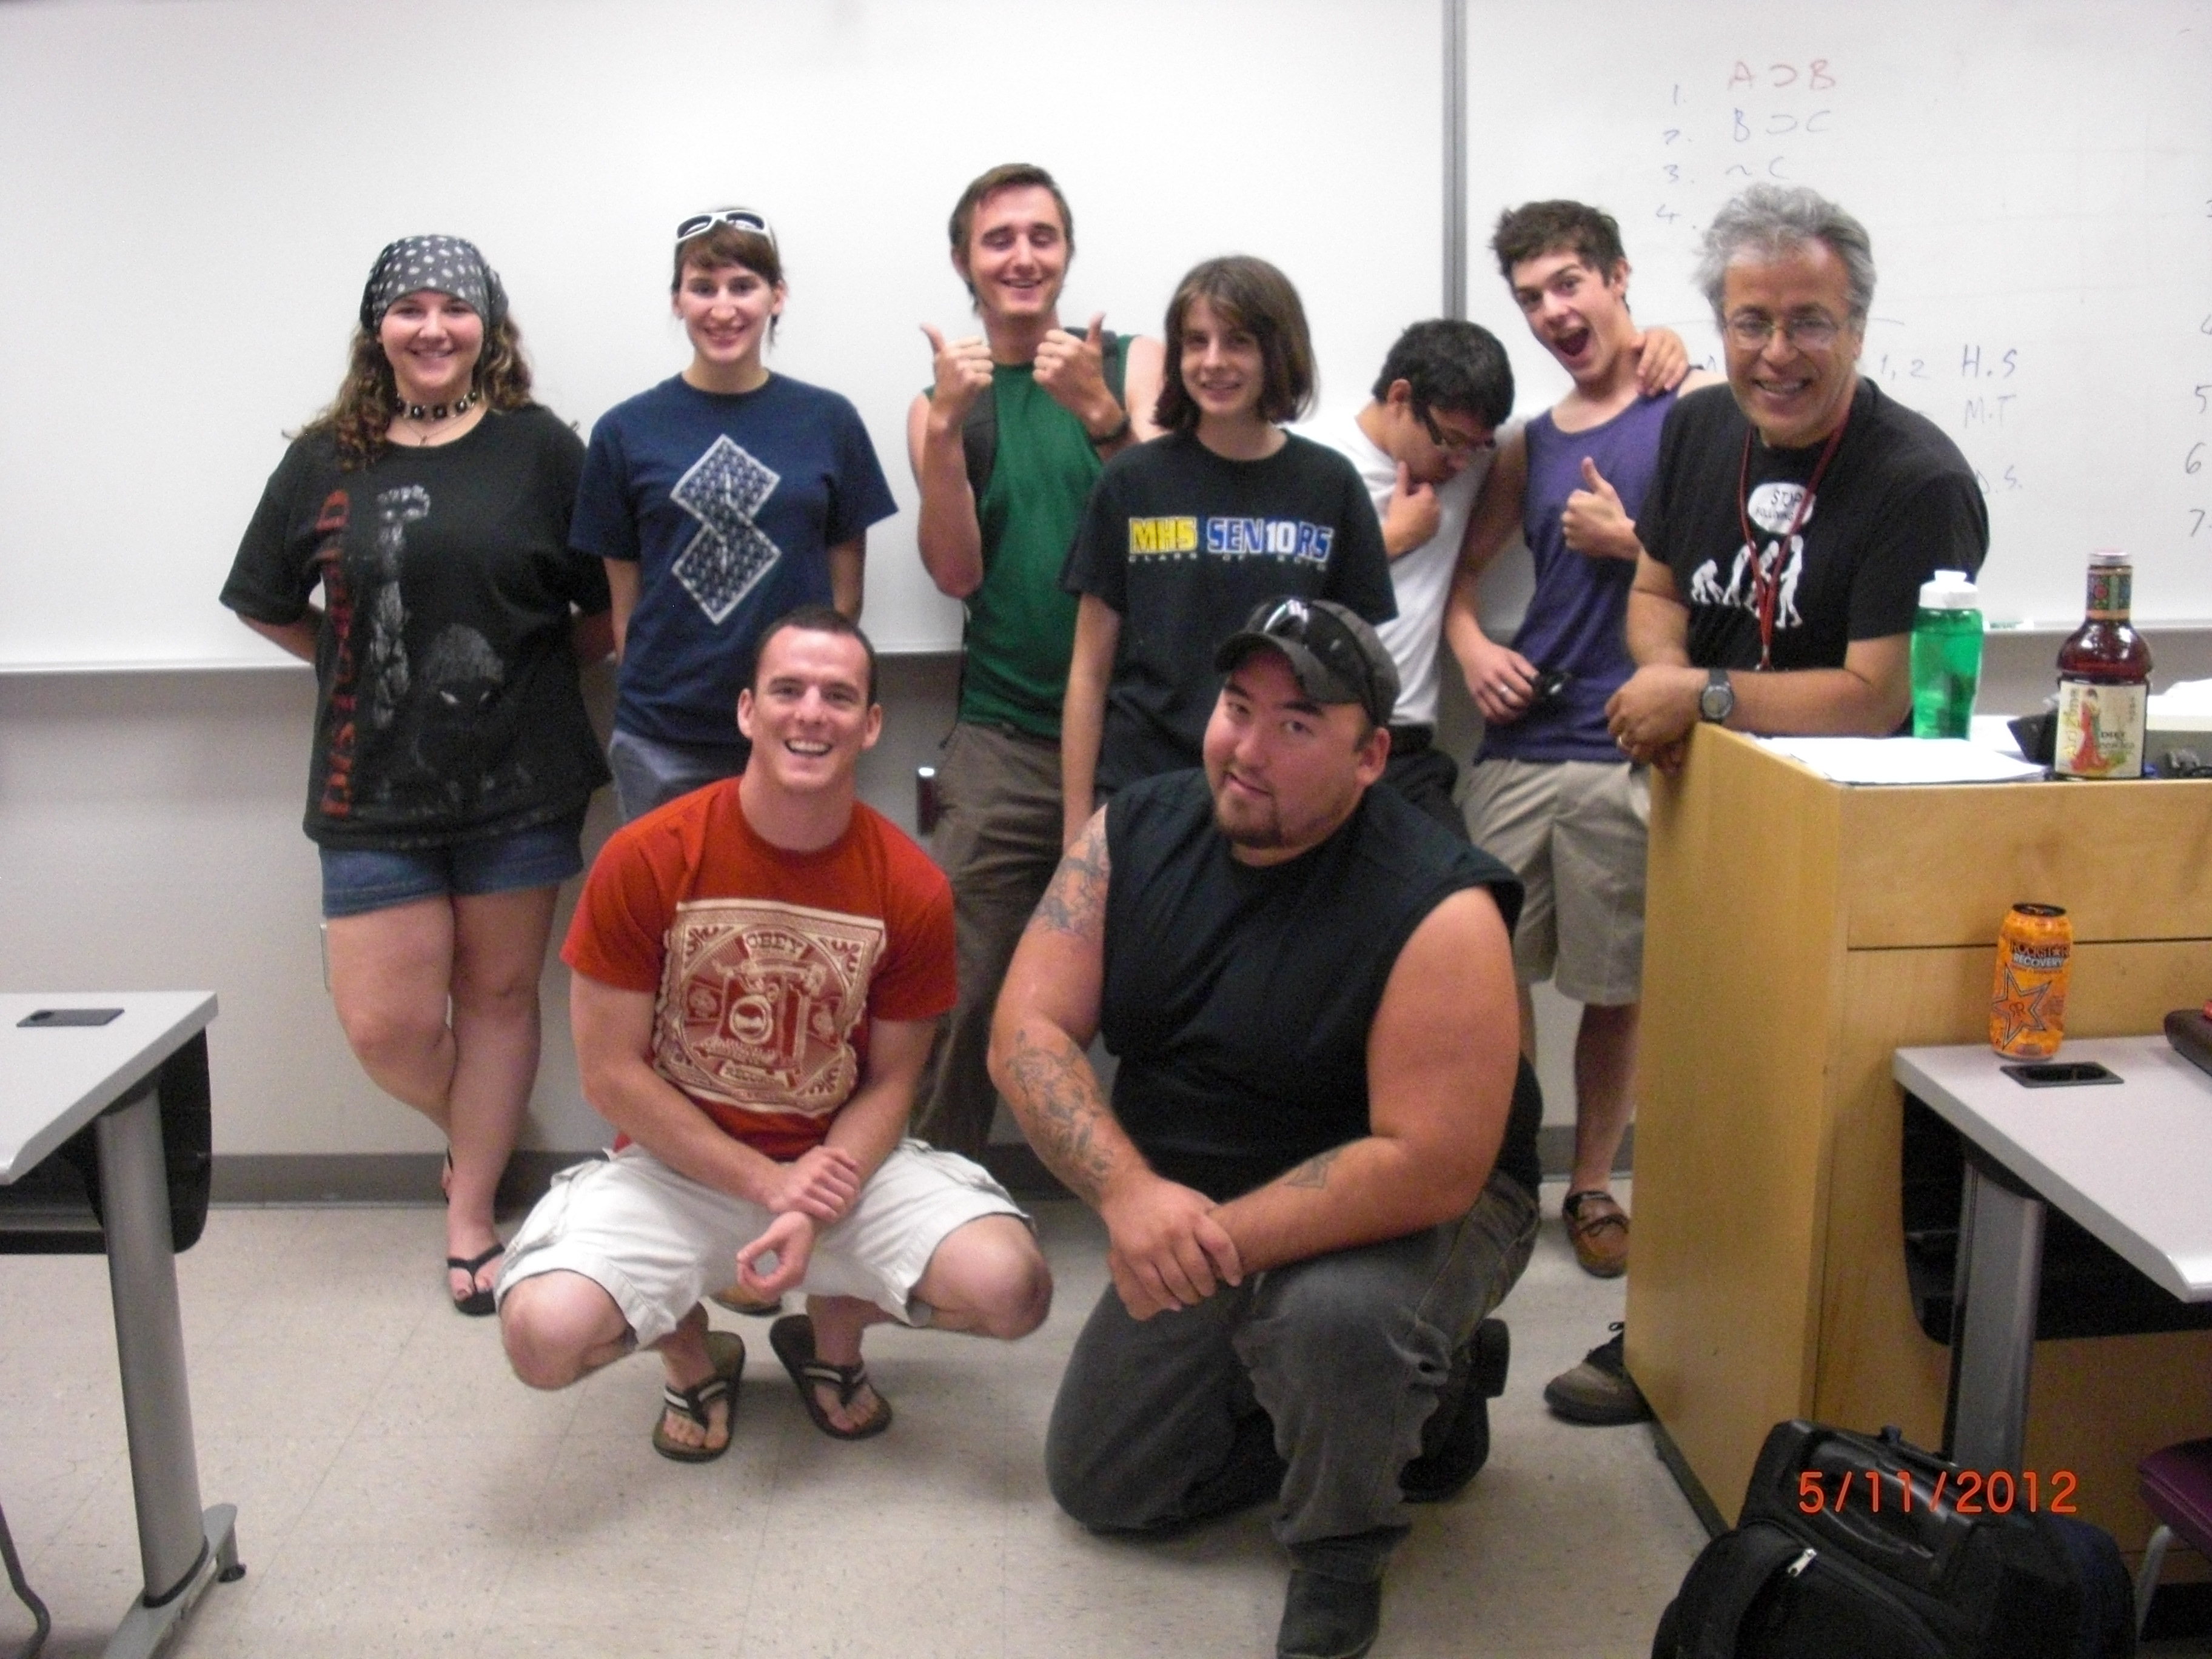 Edip Yüksel together with some members of Introduction to Logic Class at North West campus of Pima College